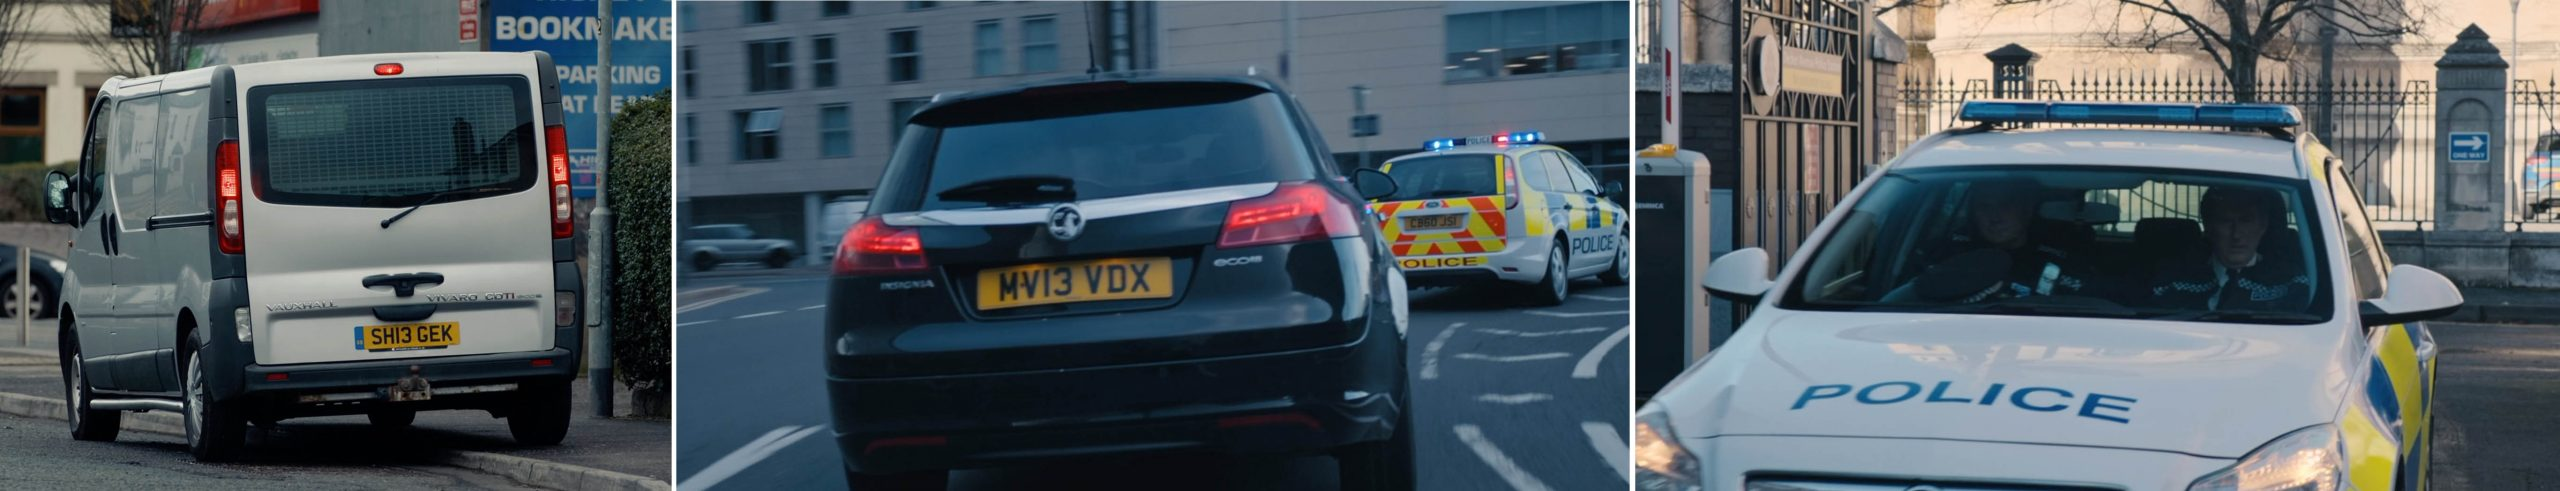 Vauxhall product placement in season 6 of LINE OF DUTY